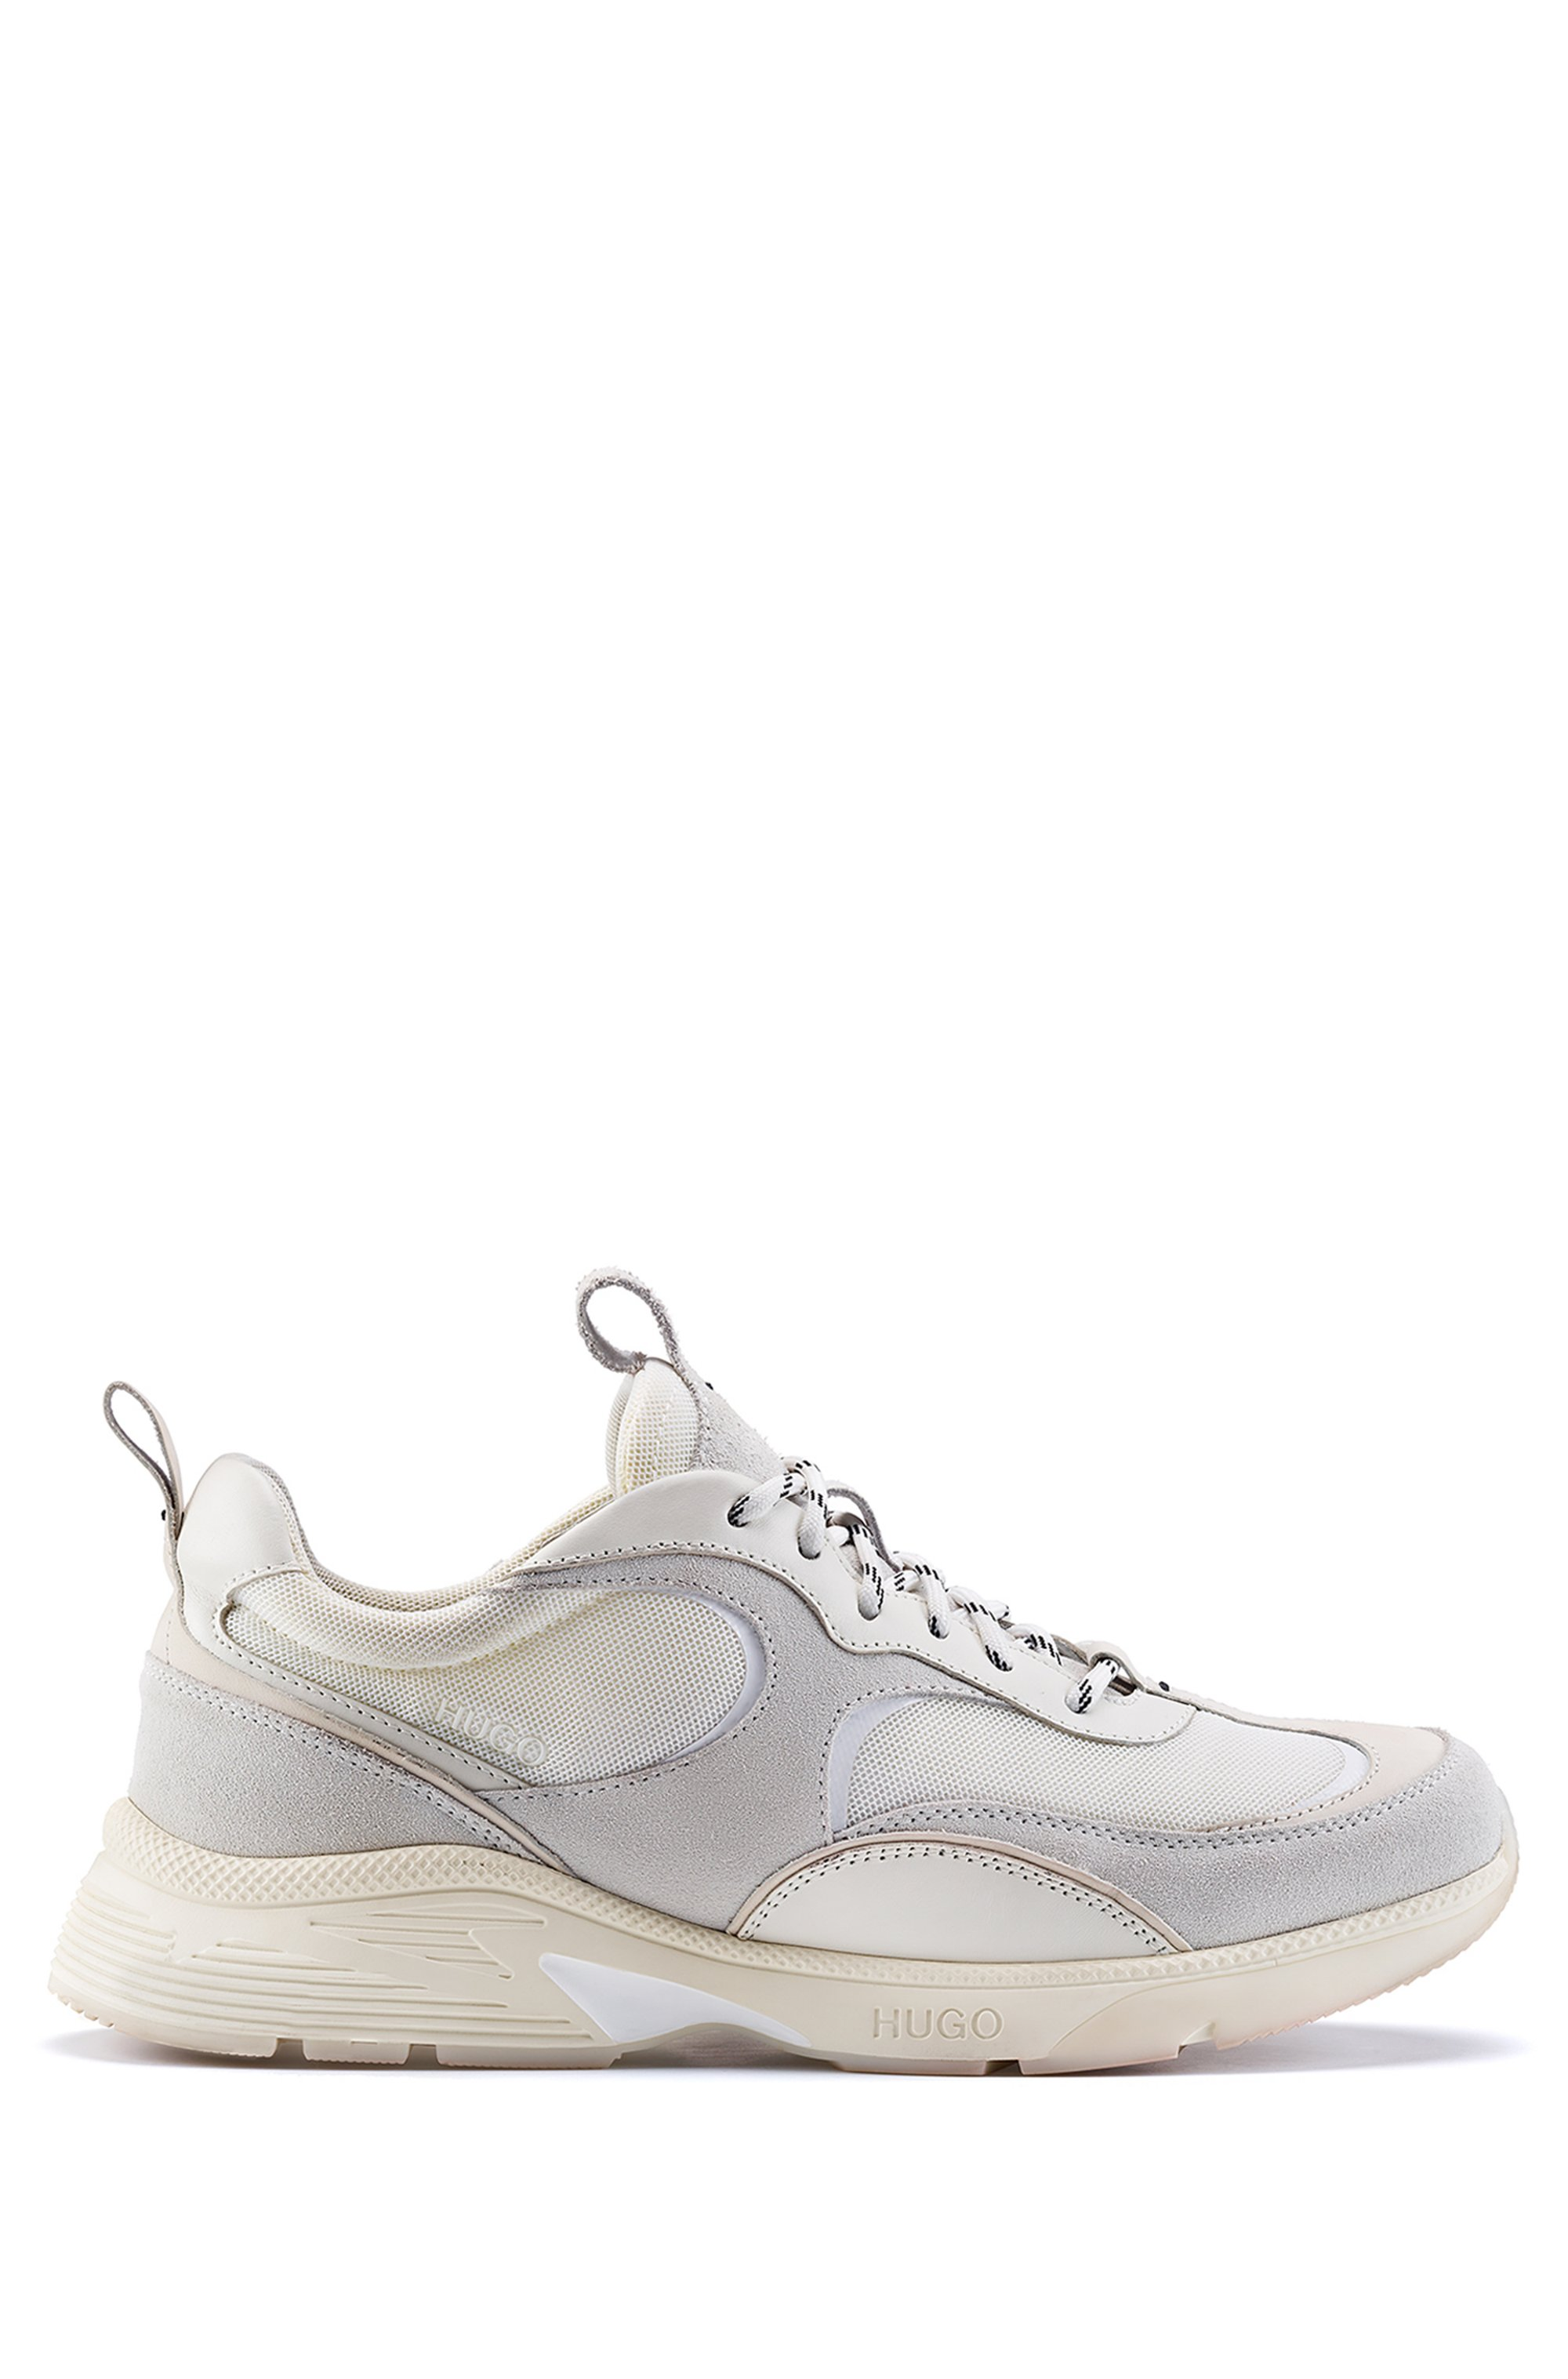 Running-style trainers in mixed materials with logo accents, White